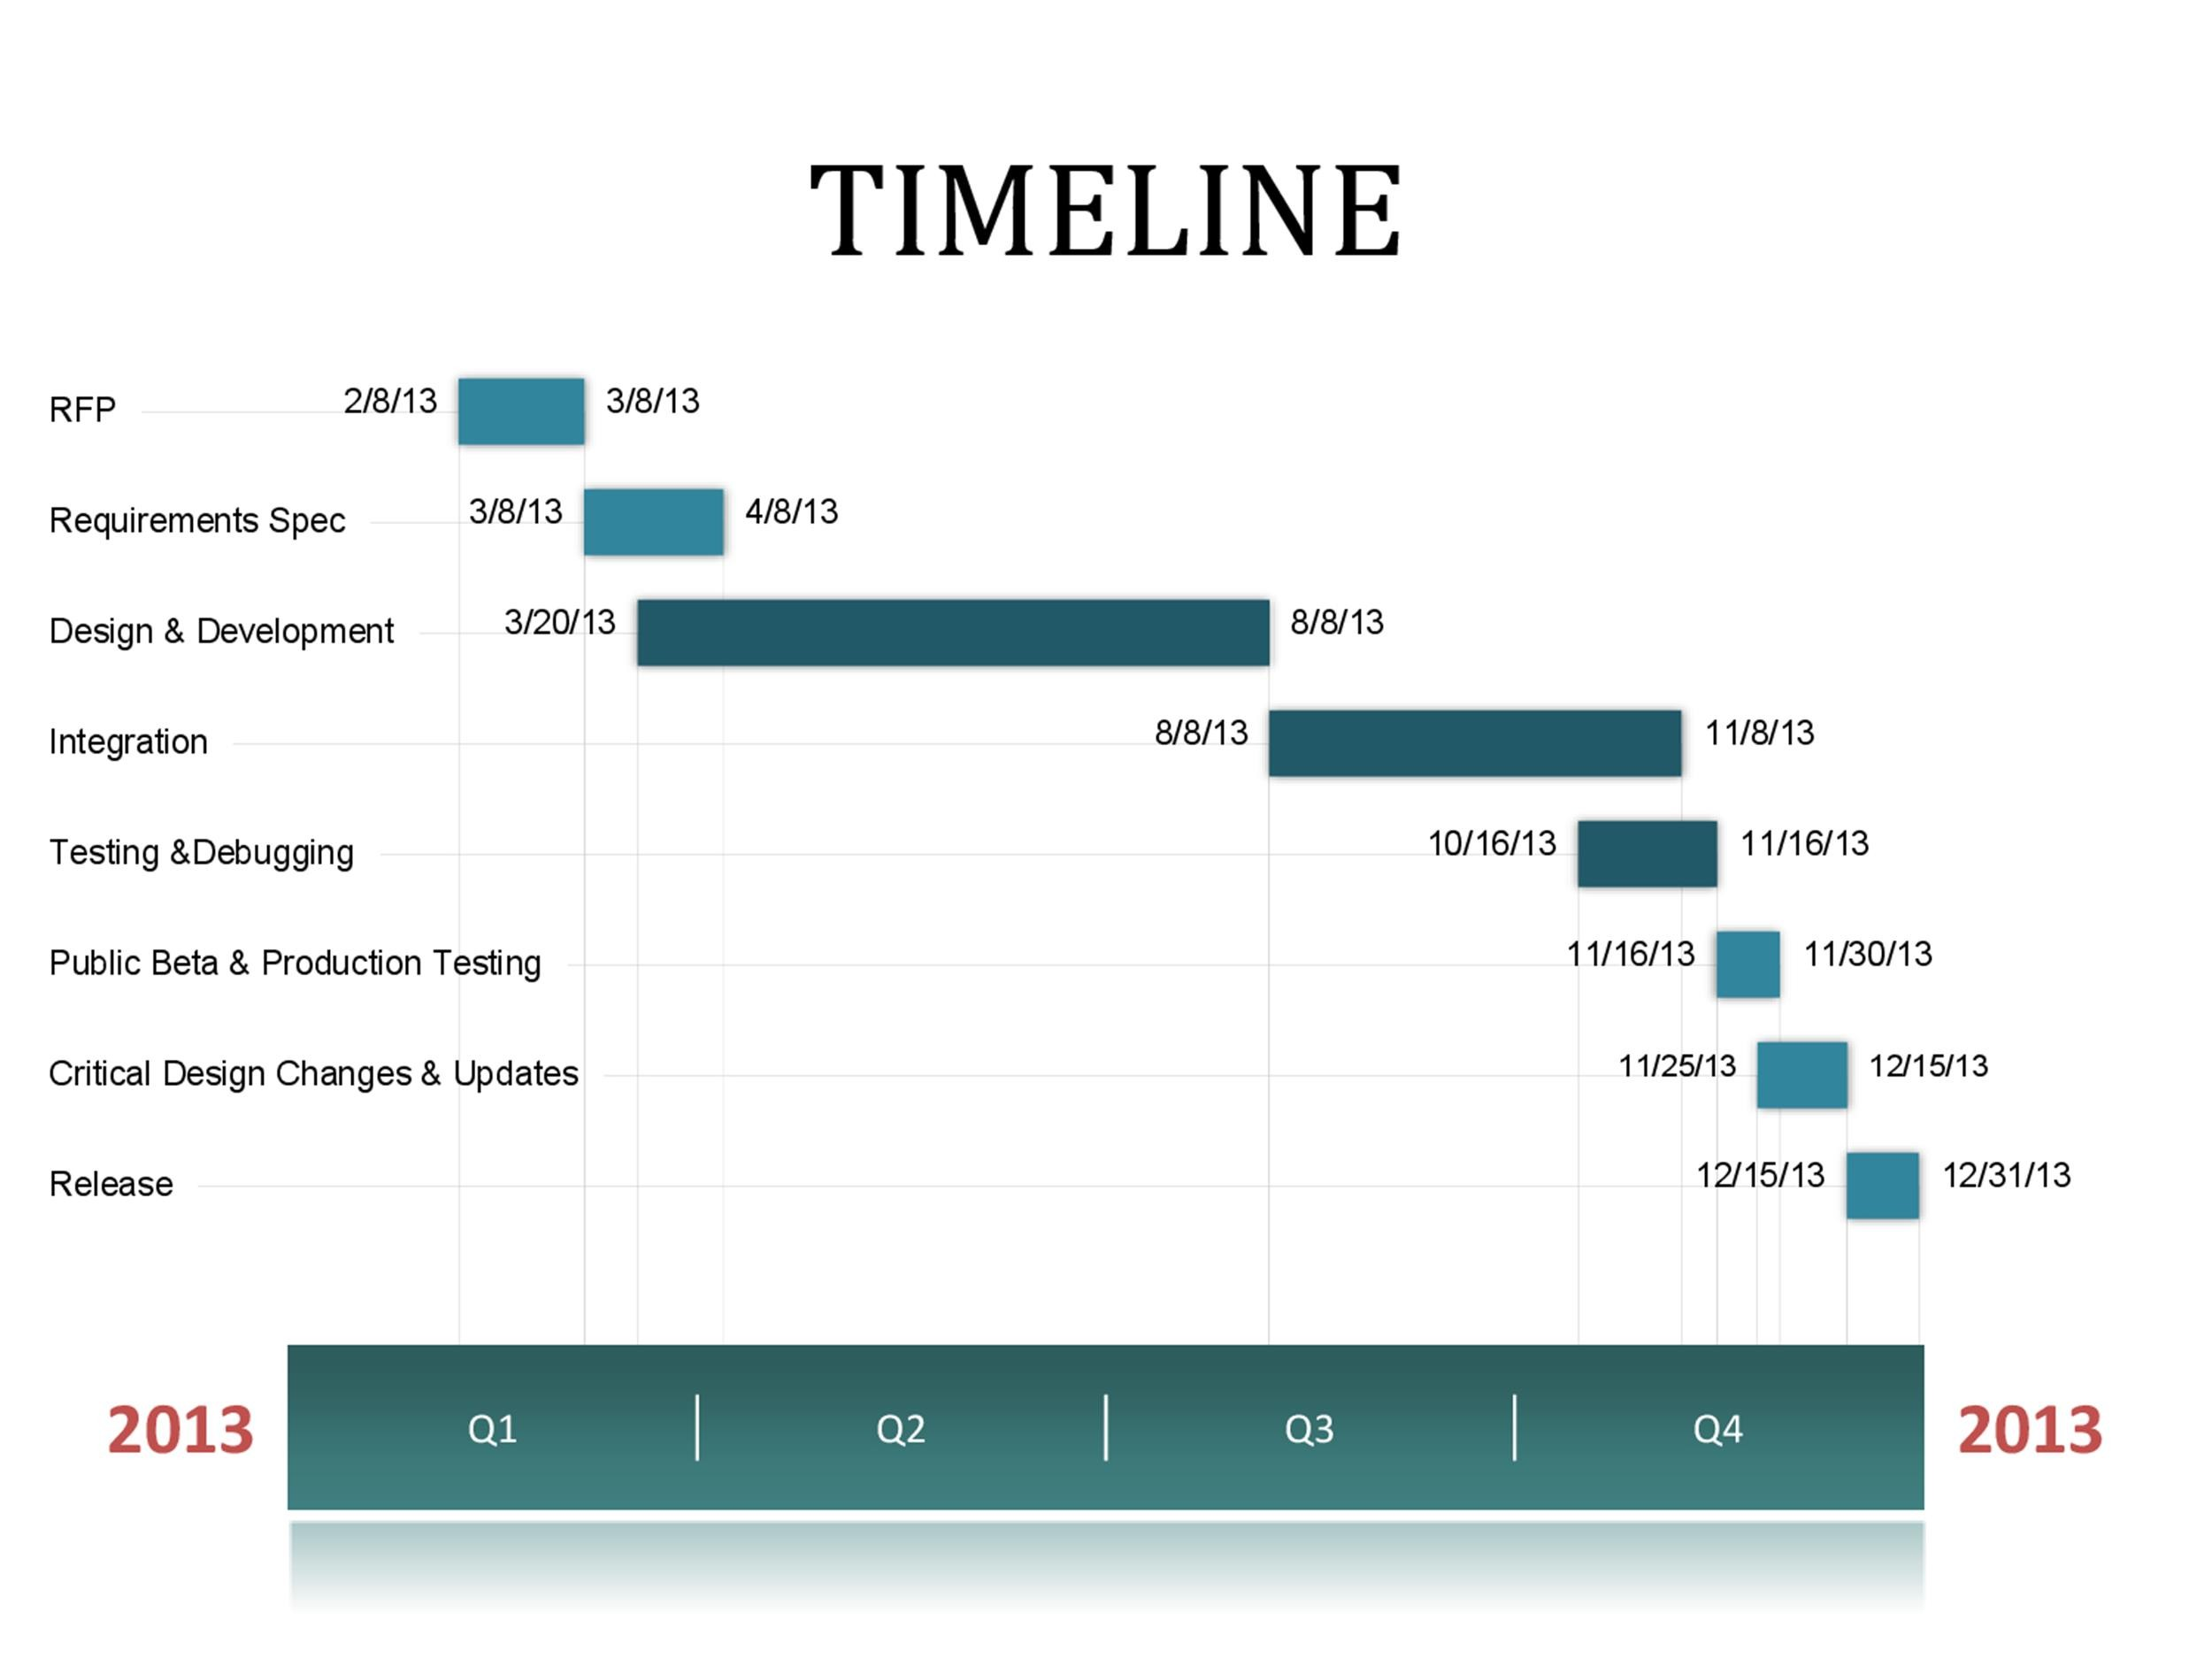 30+ Timeline Templates (Excel, Power Point, Word) - Template Lab - timeline word template